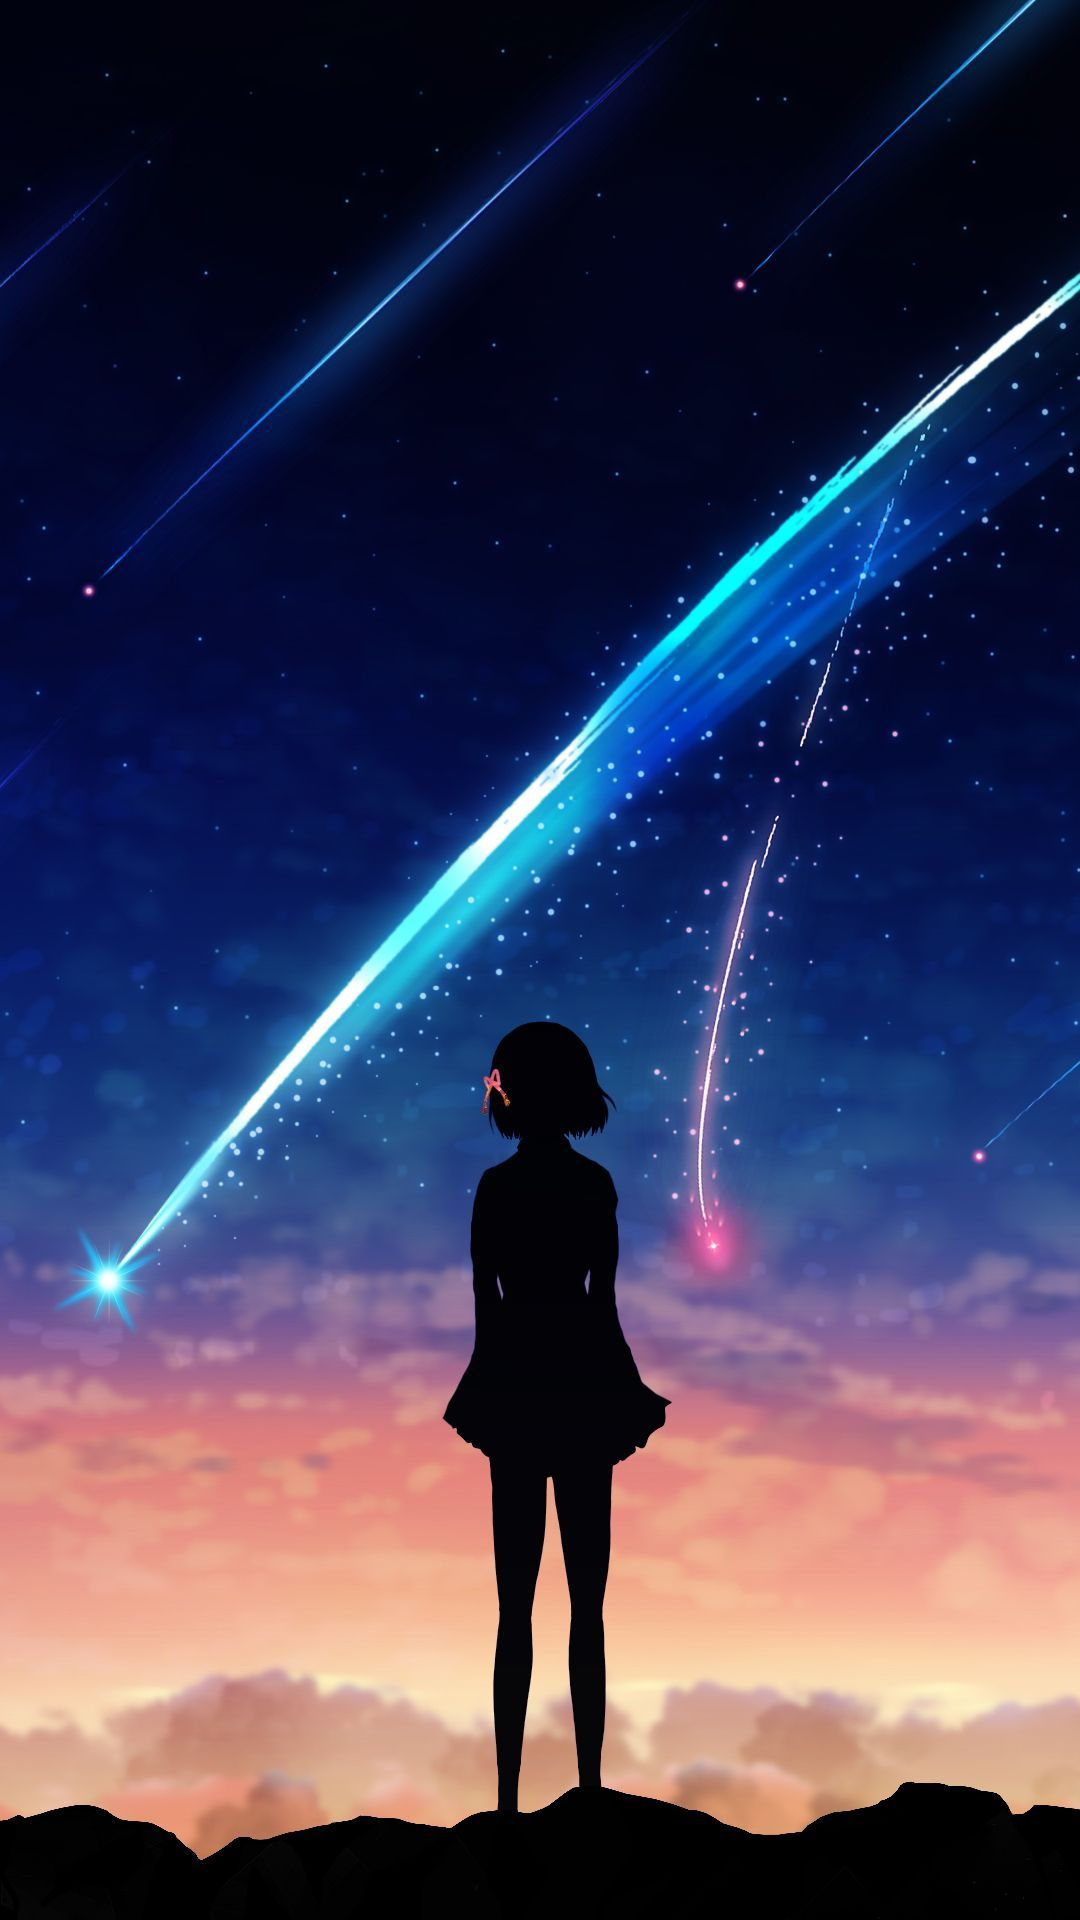 240 Your Name Anime Android Iphone Desktop Hd Backgrounds Wallpapers 1080p 4k 1080x1920 2020